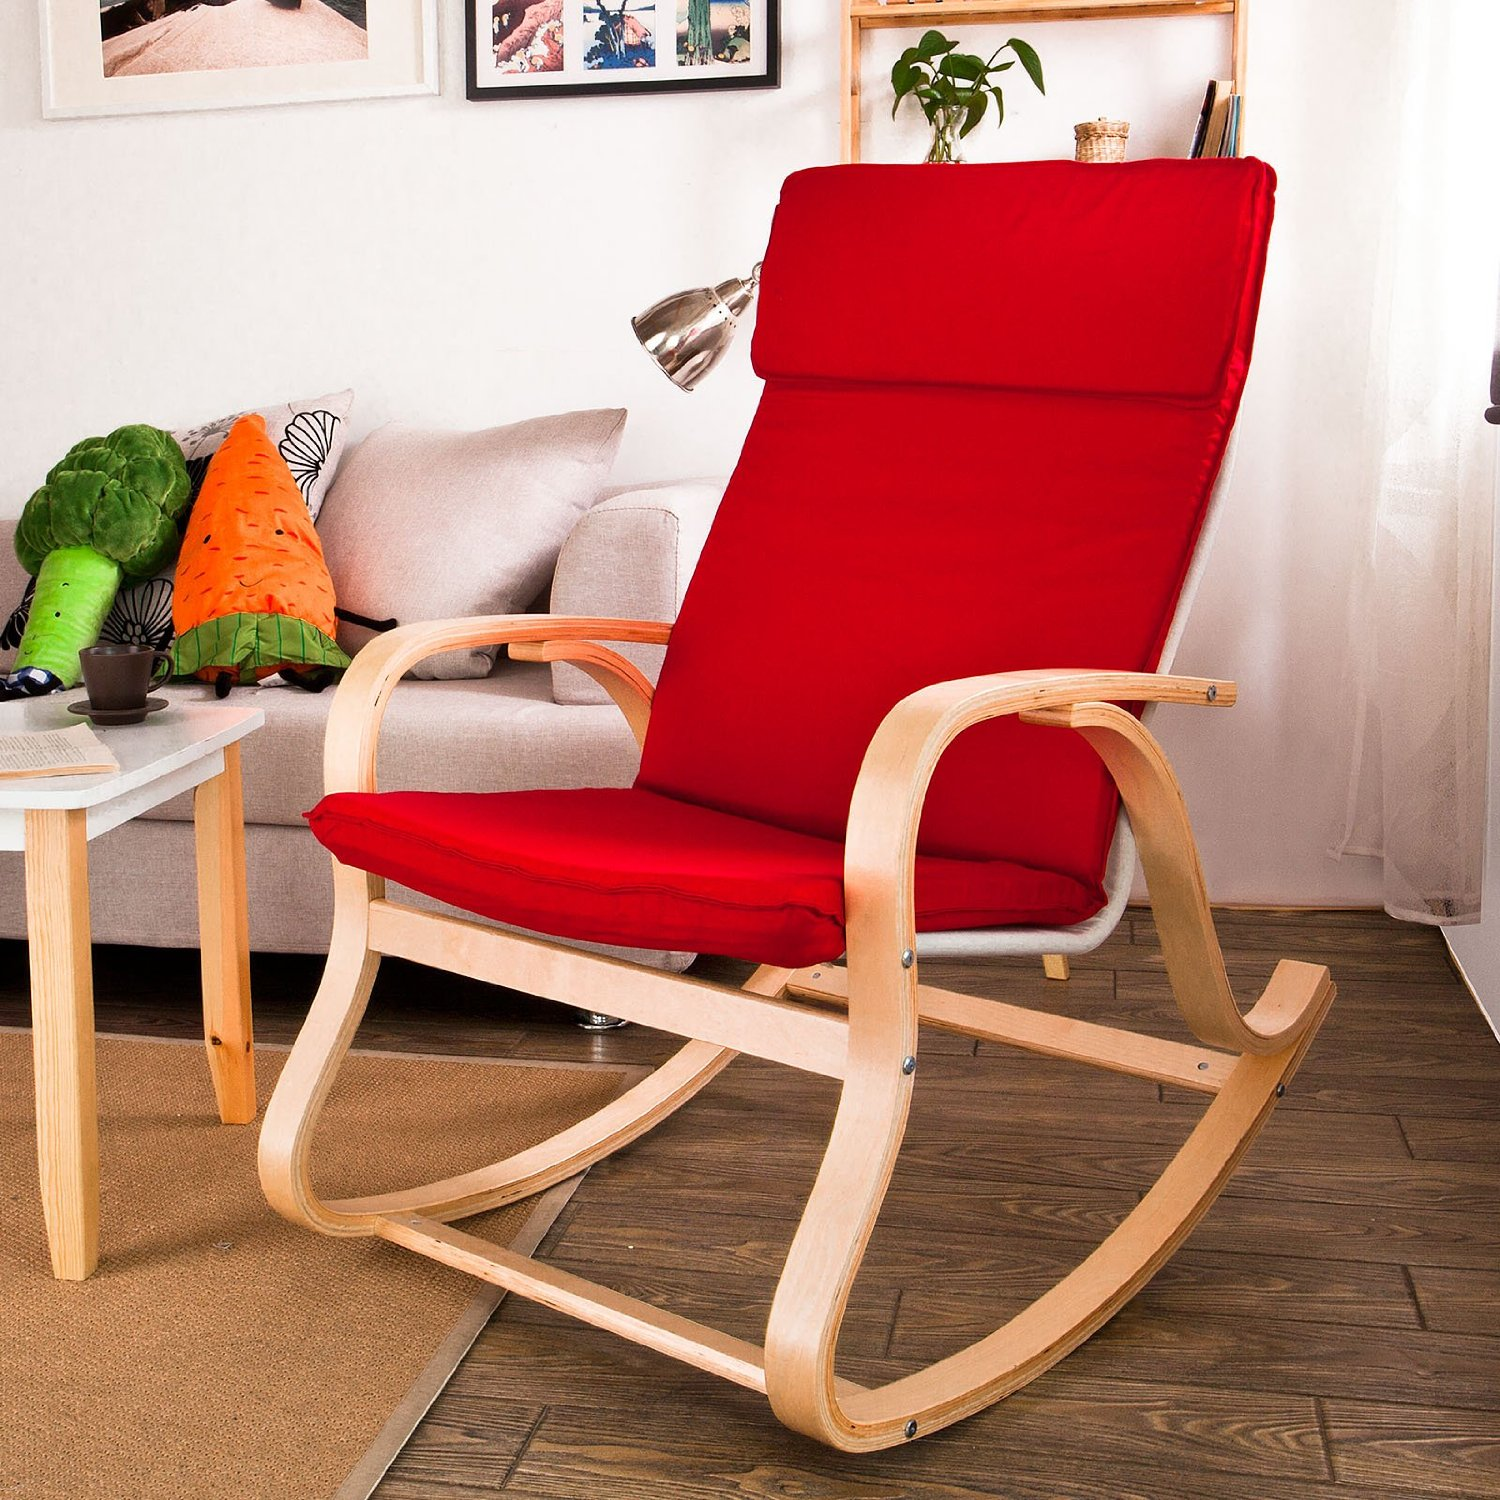 Comfy Chairs For Kids Rooms Ikea Wooden Rocking Chairs Prd Furntiure